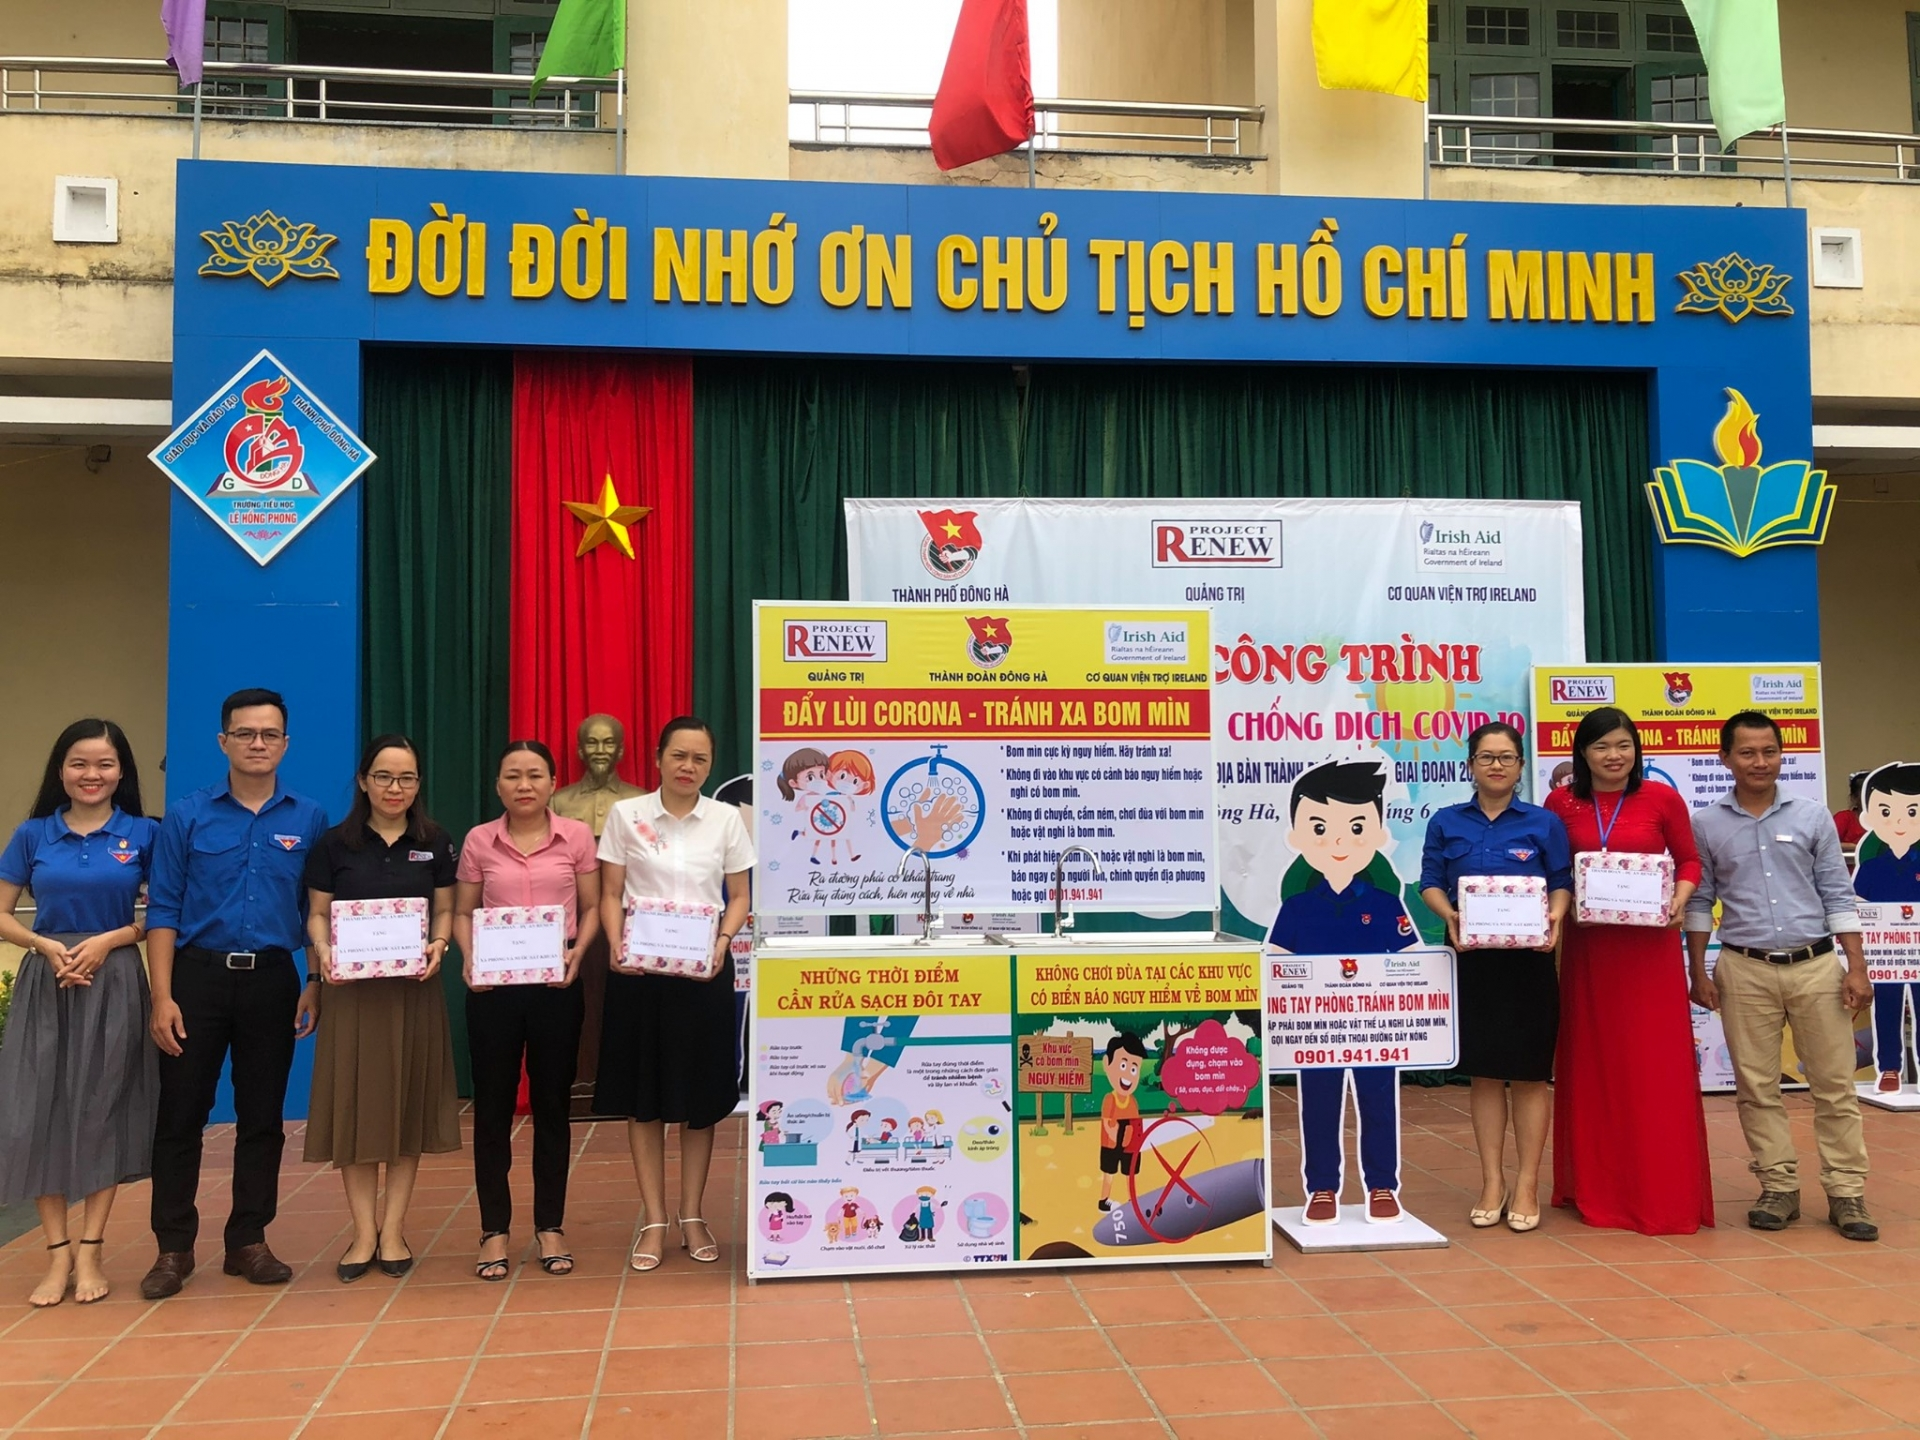 project renew equips five school in quang tri with portable washbasins